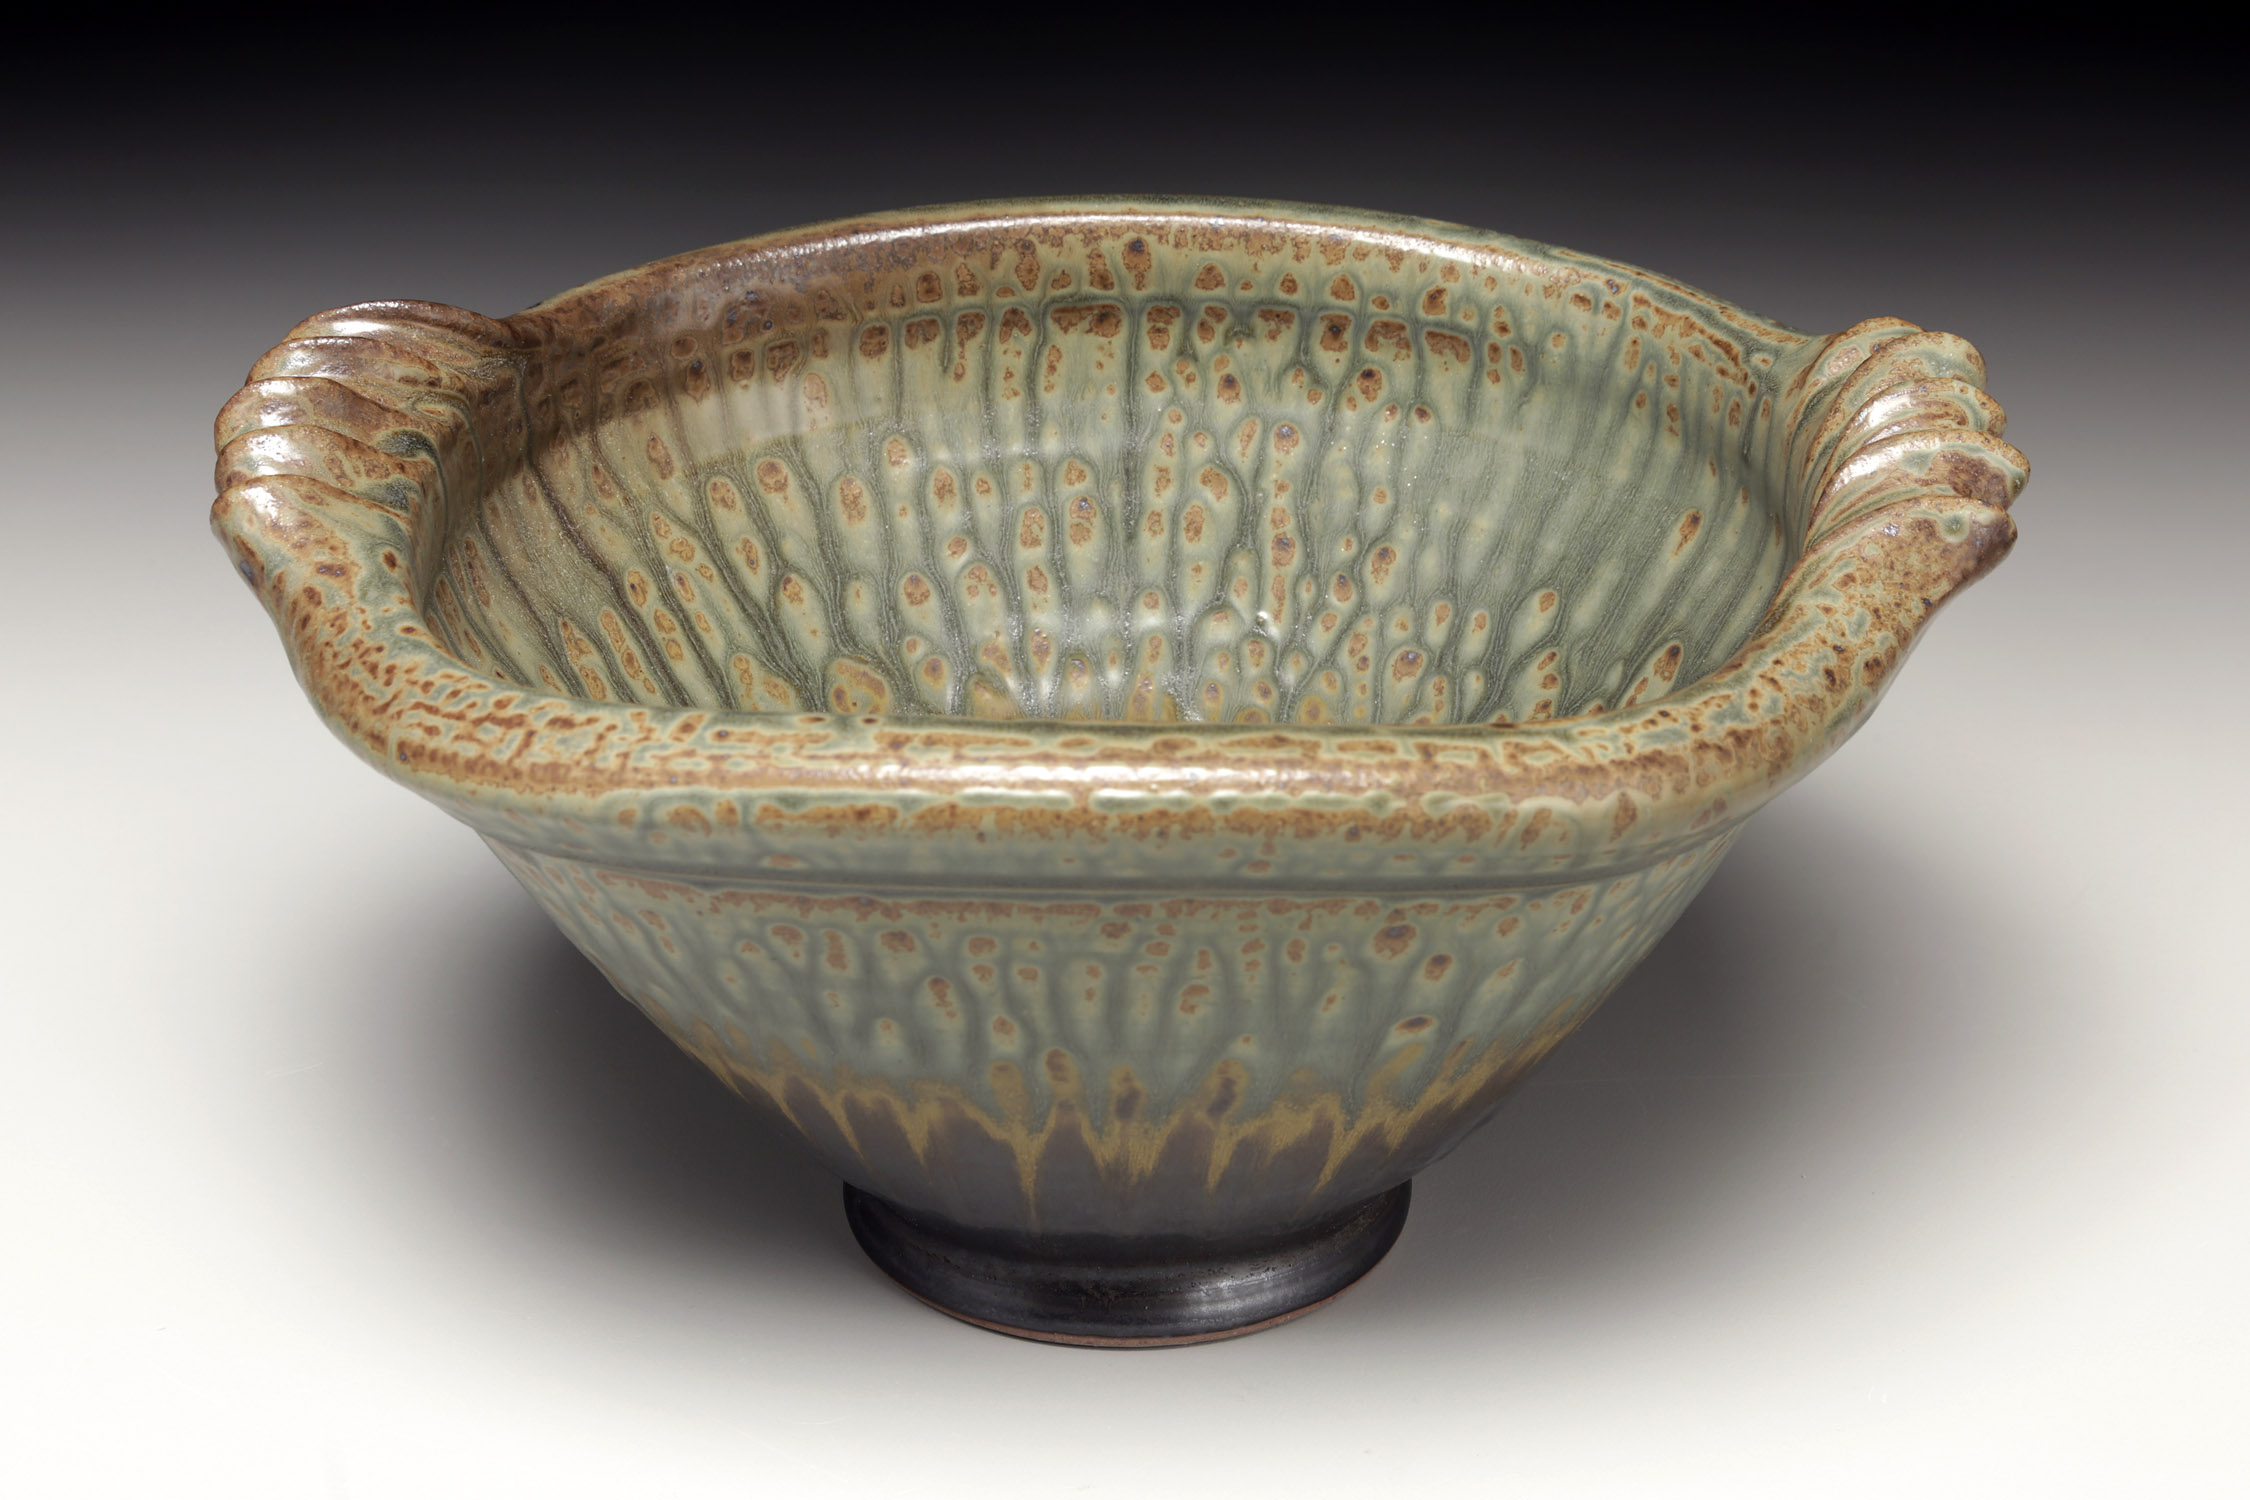 Hollow Rim Handled Bowl